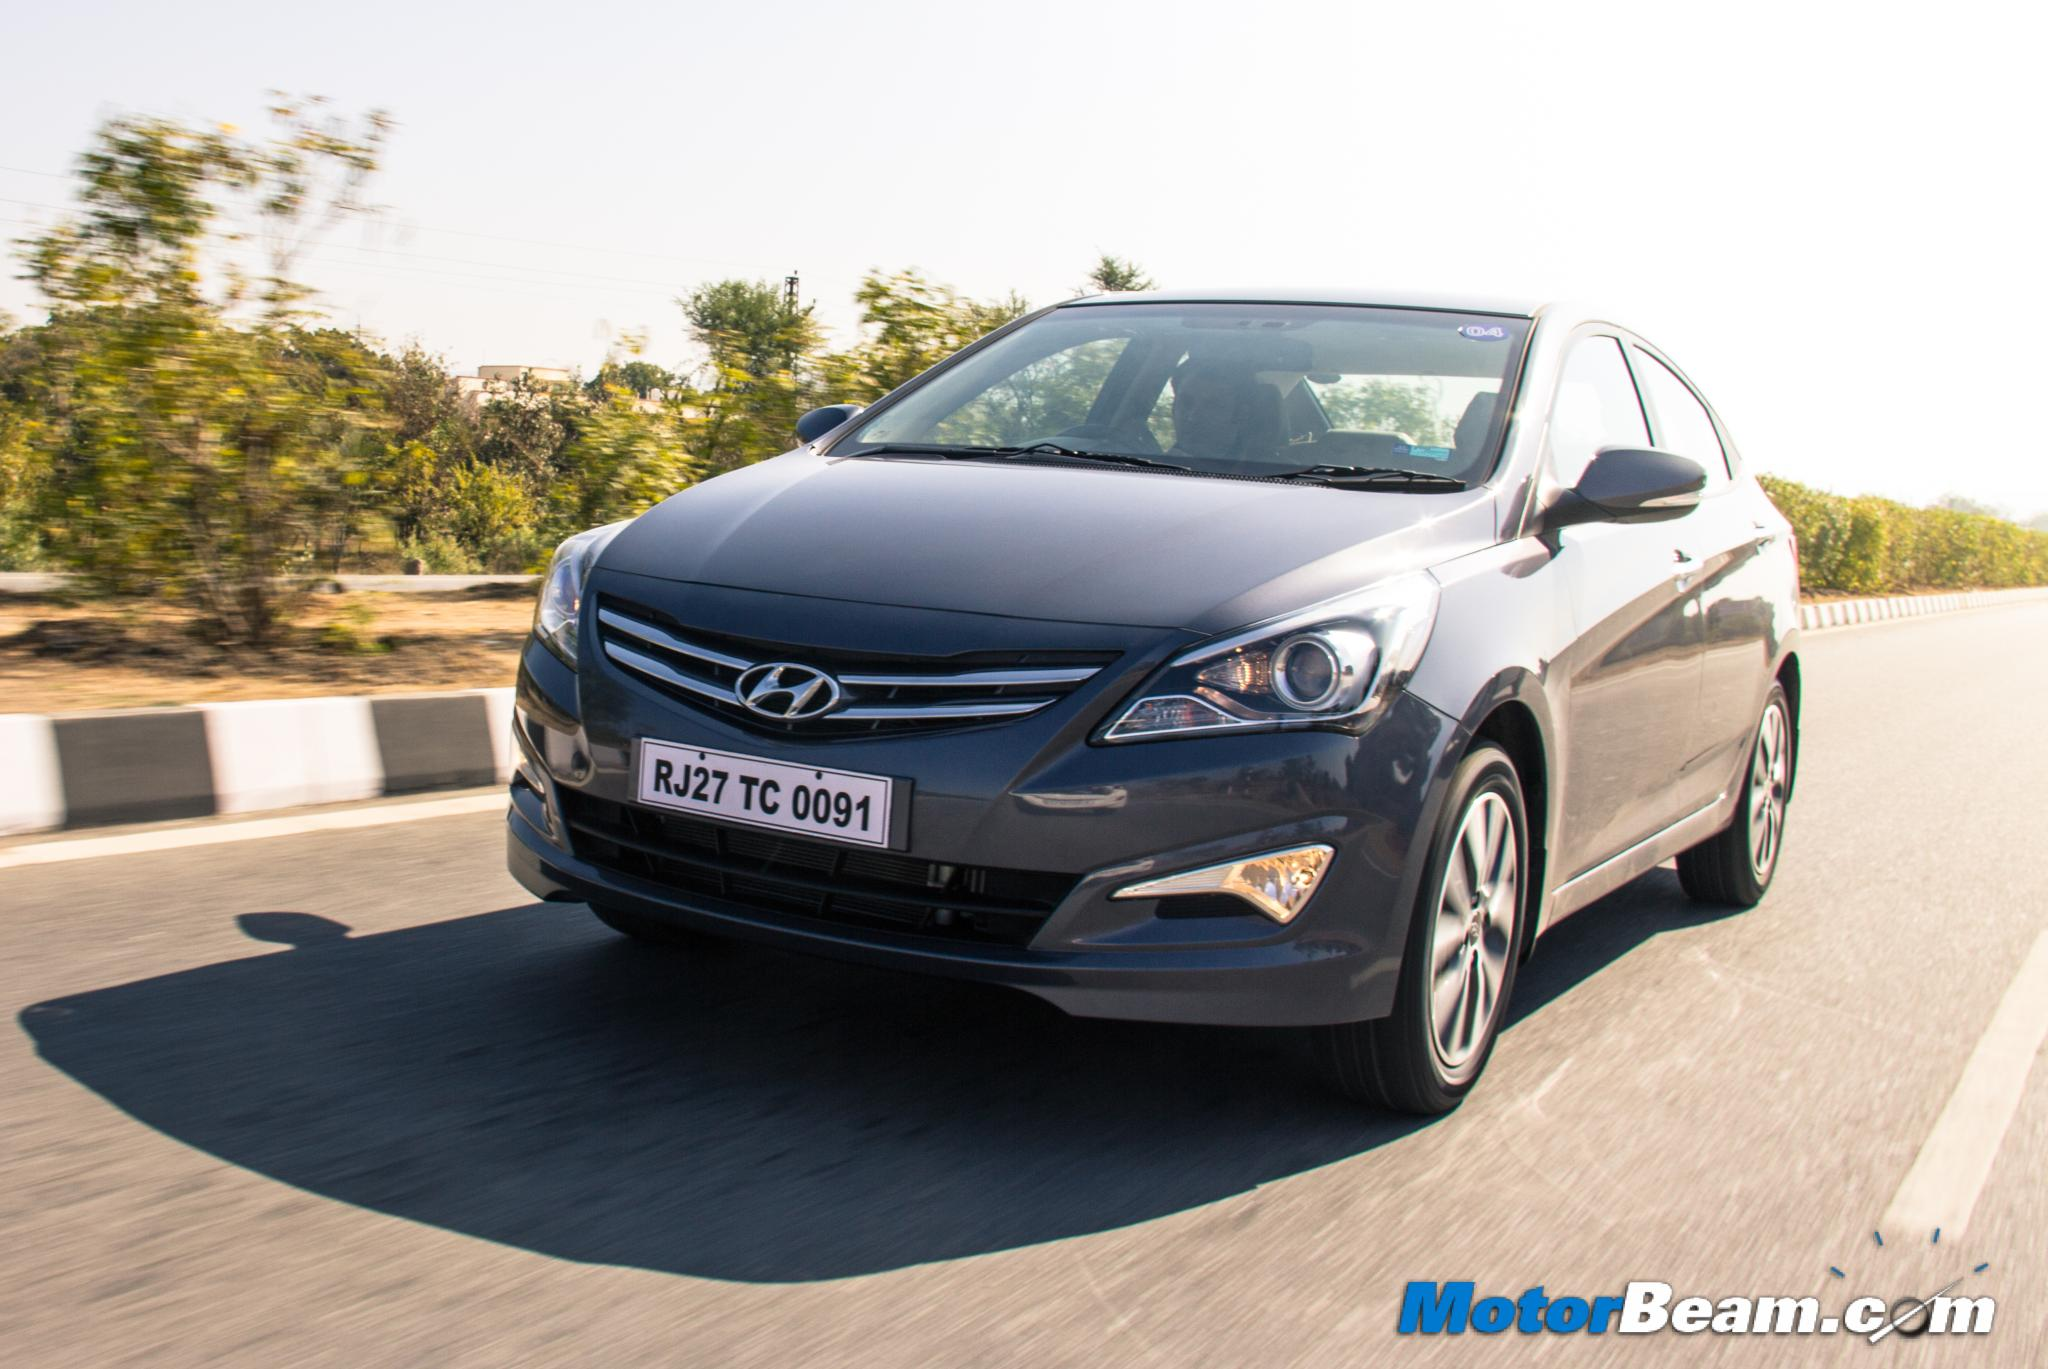 2015 Hyundai Verna Review